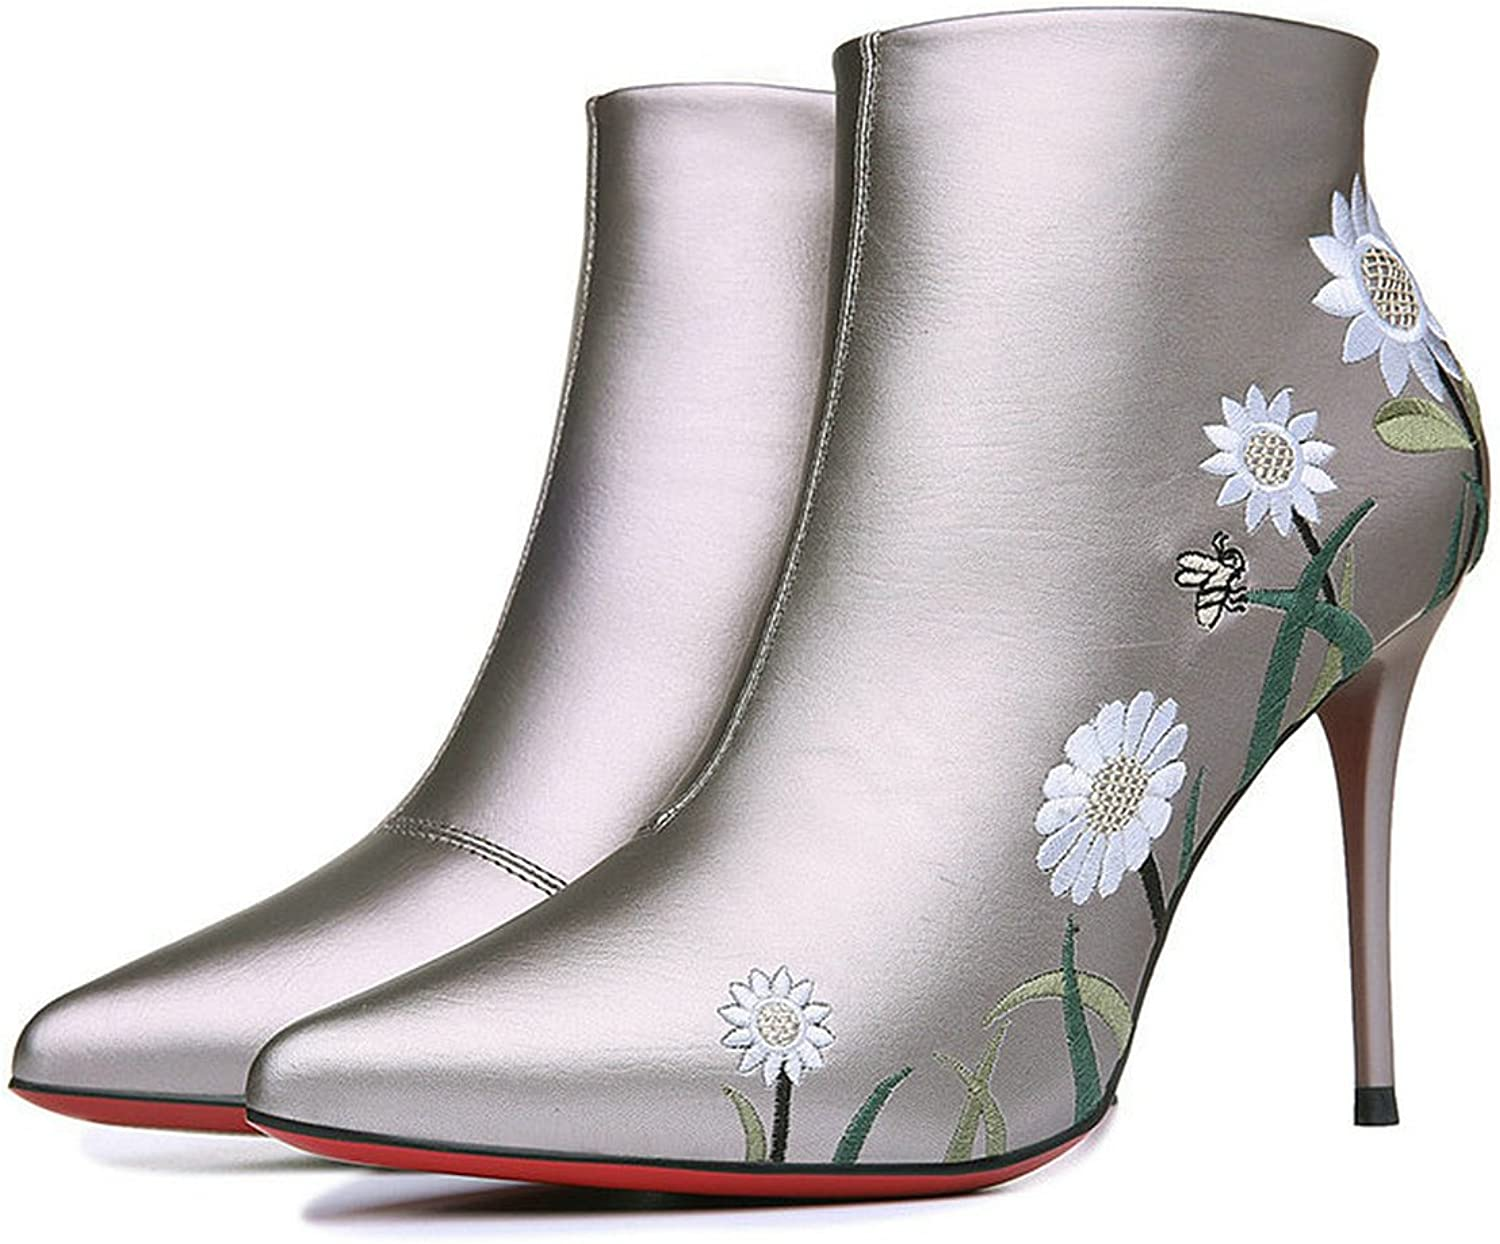 Womens High Heels Low Top Solid PU Winter Fashion Boots Flower Lady Boots (8, Silver)